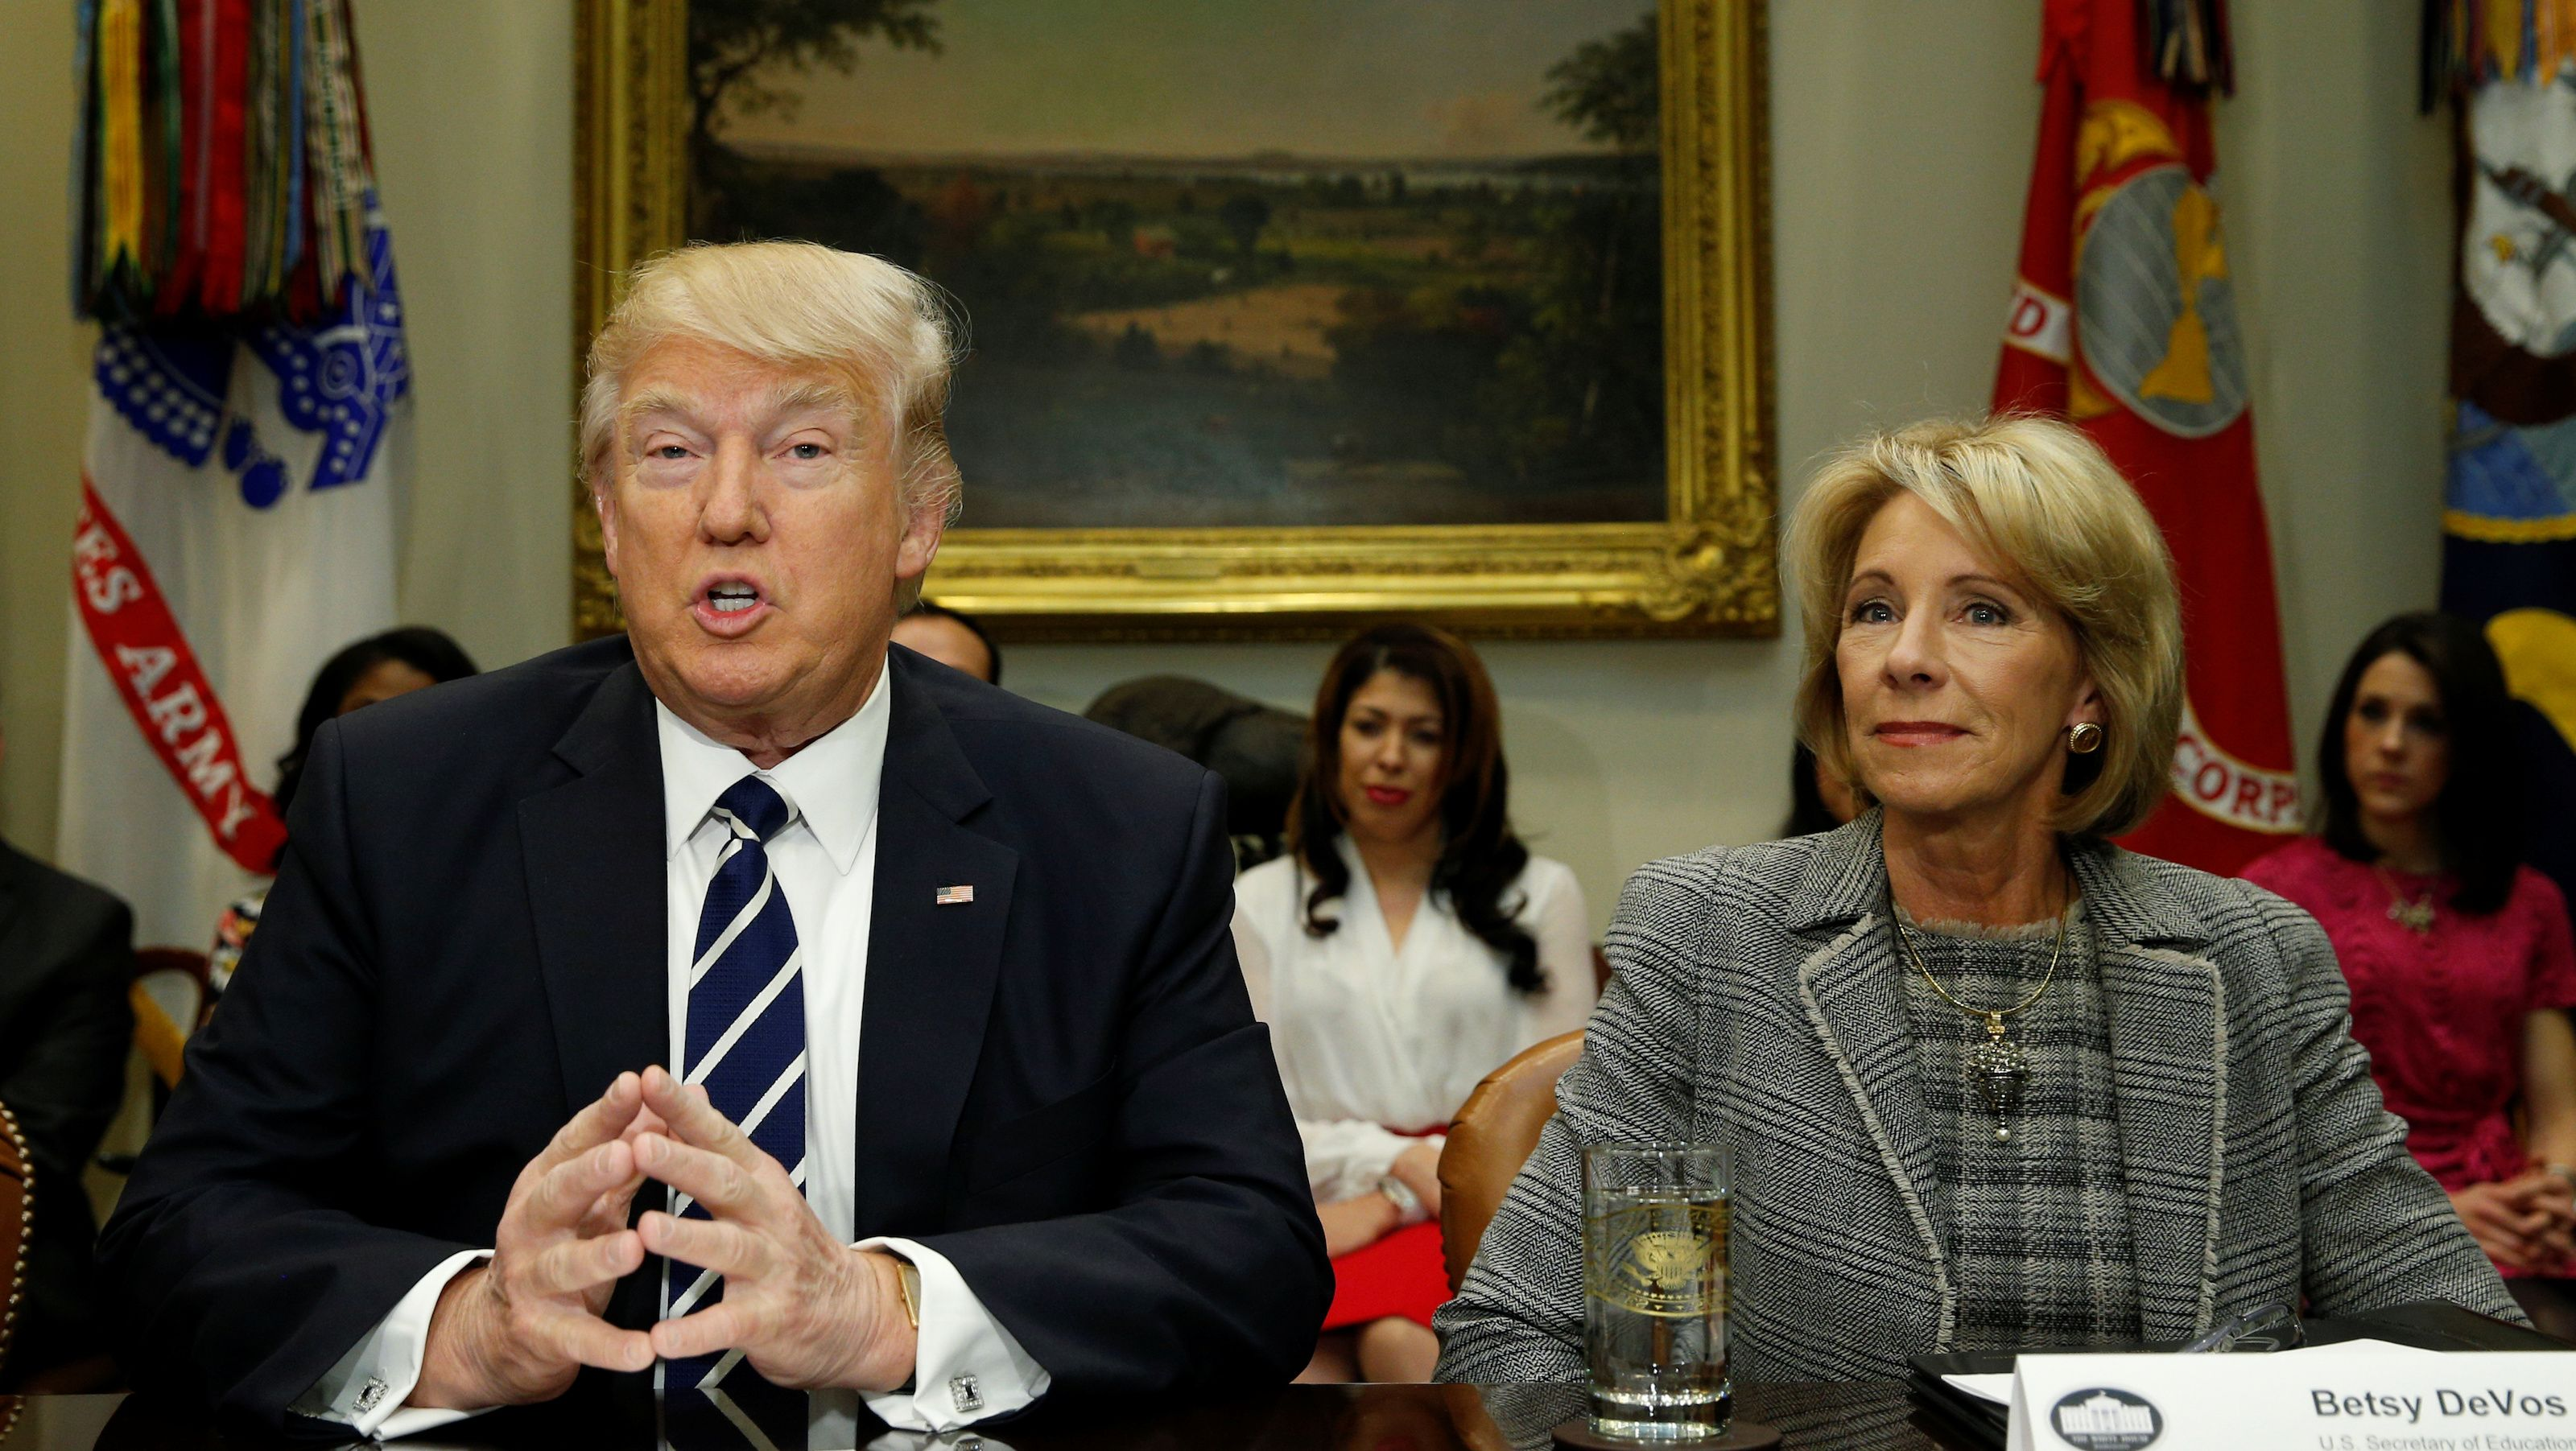 Trump and DeVos Still Want to Make Massive Cuts to Student Aid Programs